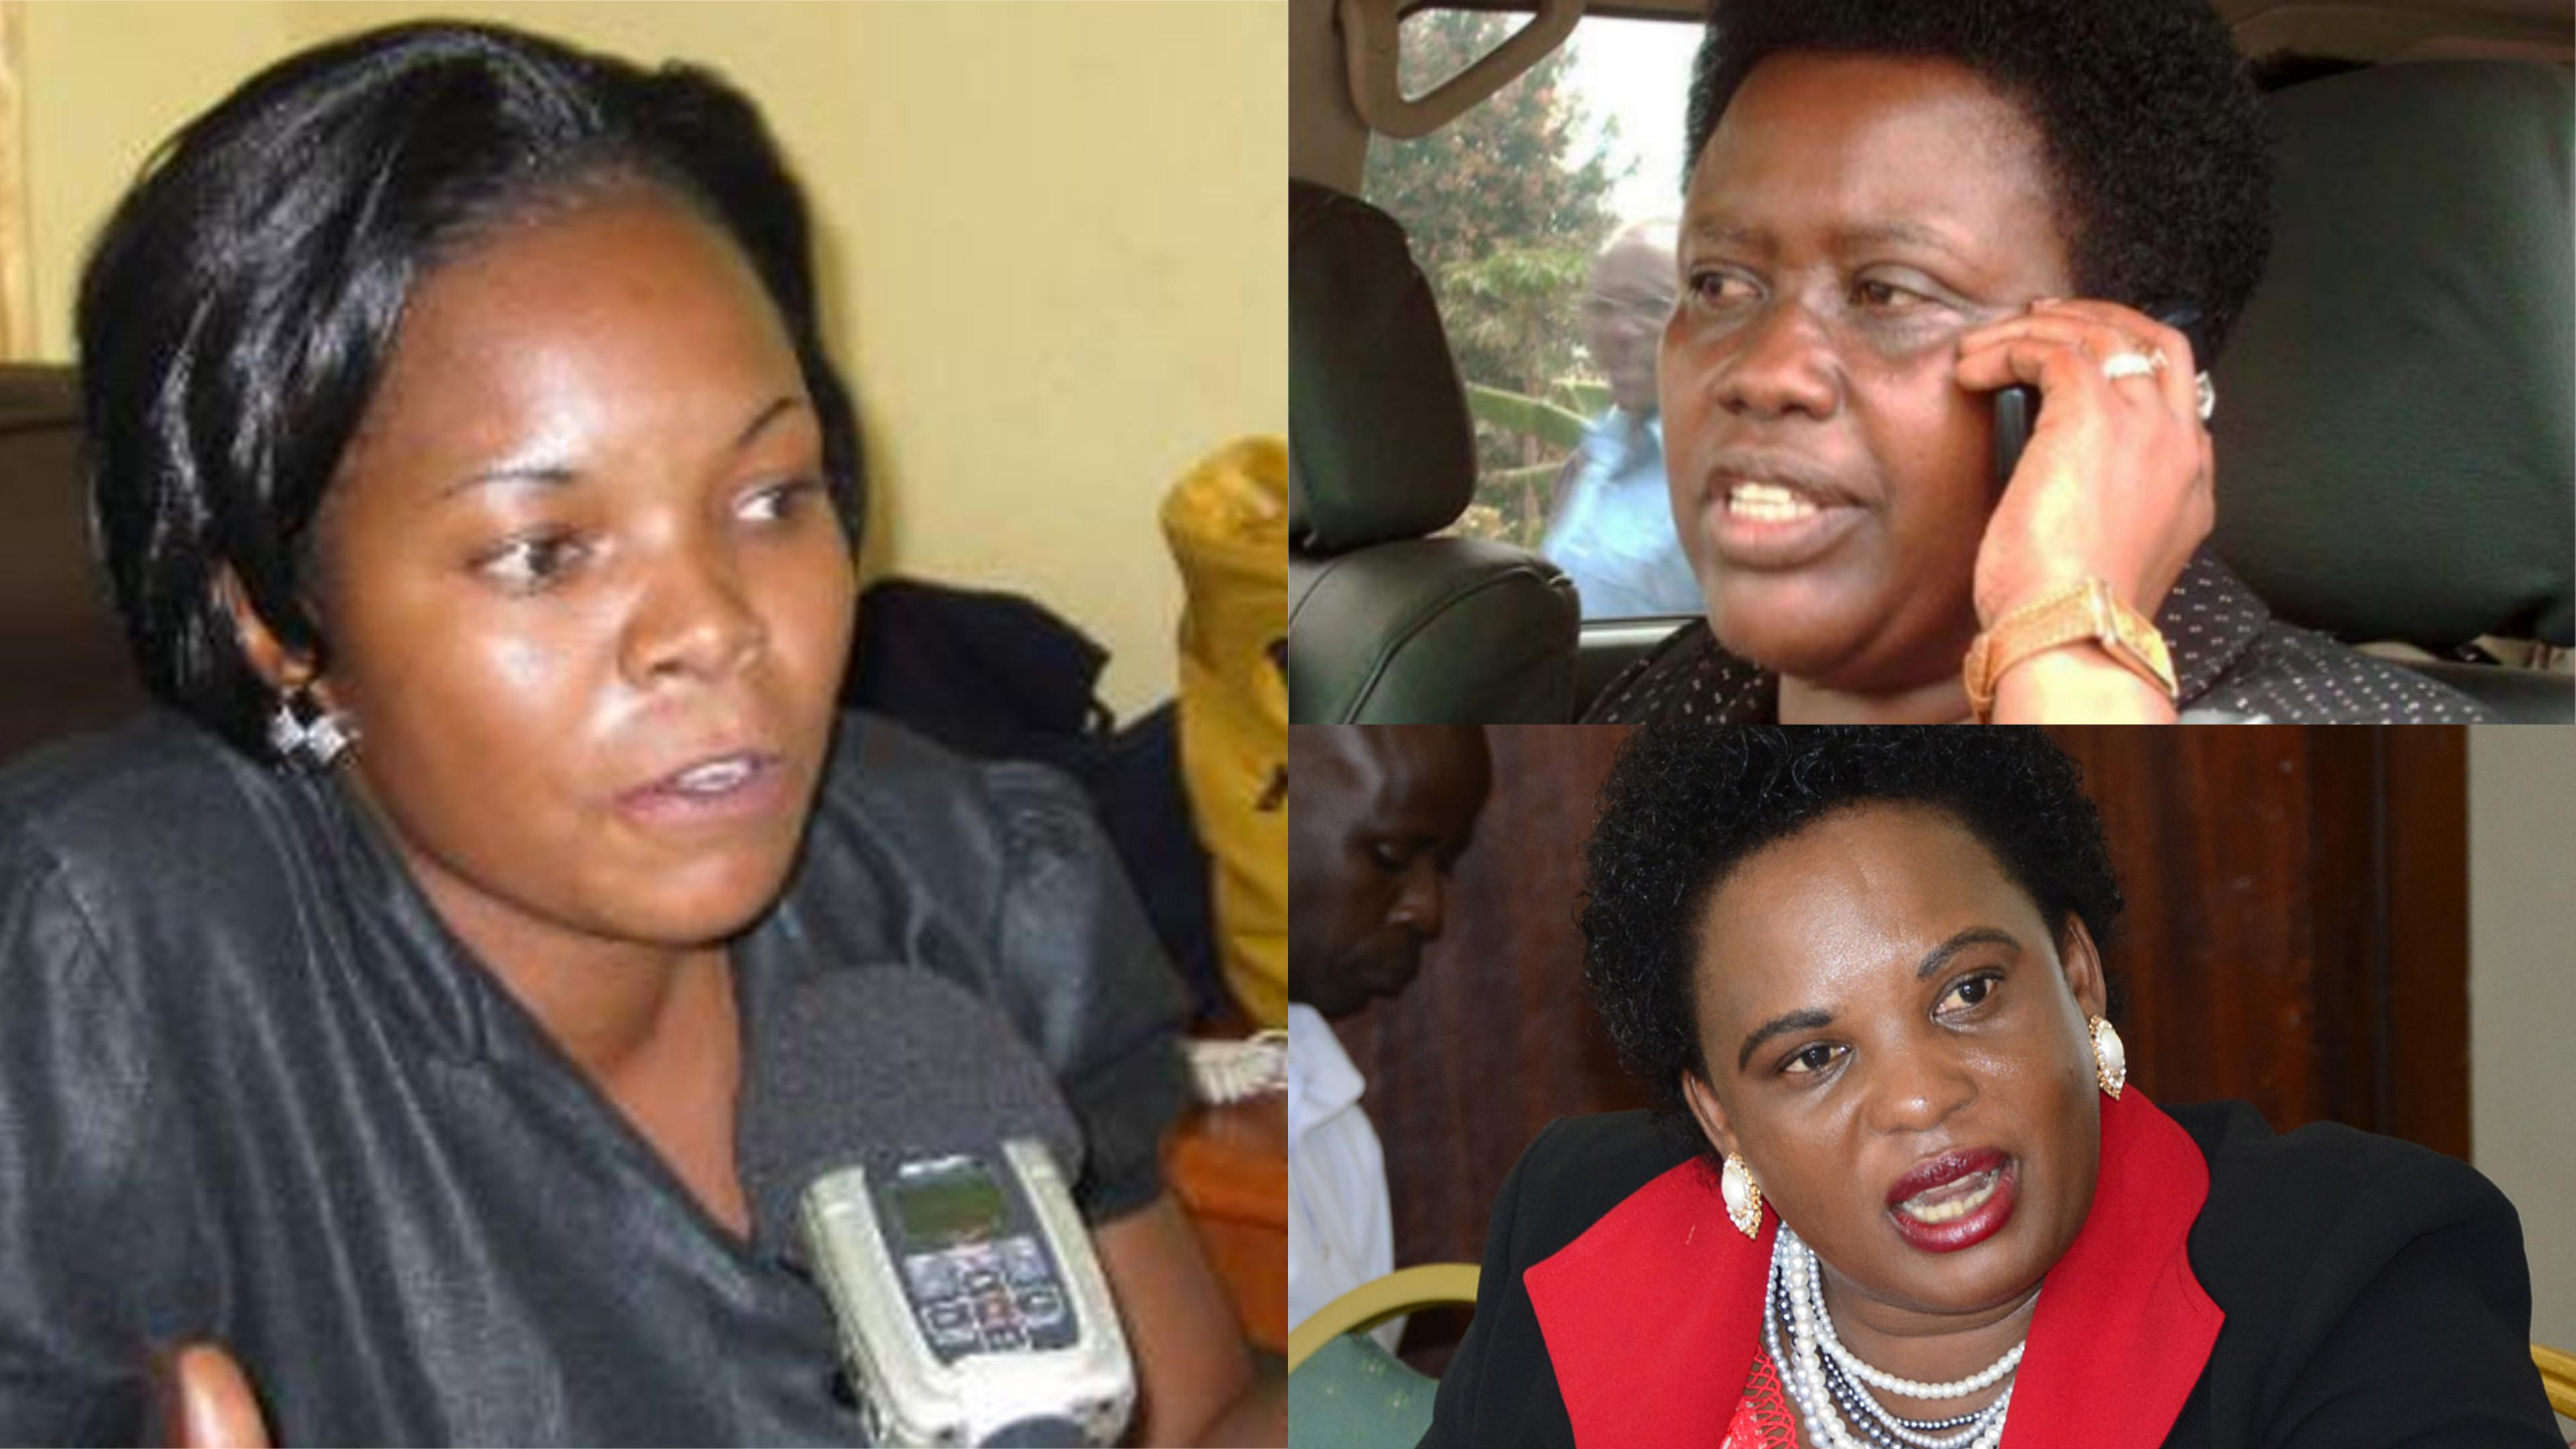 State Minister for Lands, Persis Namuganza has asked Lands Minister Betty Amongi and Animal Industry State Minister Joy Kabatsi explain circumstances under which government ranches and Stock farms were dished out to individuals and companies across the country.